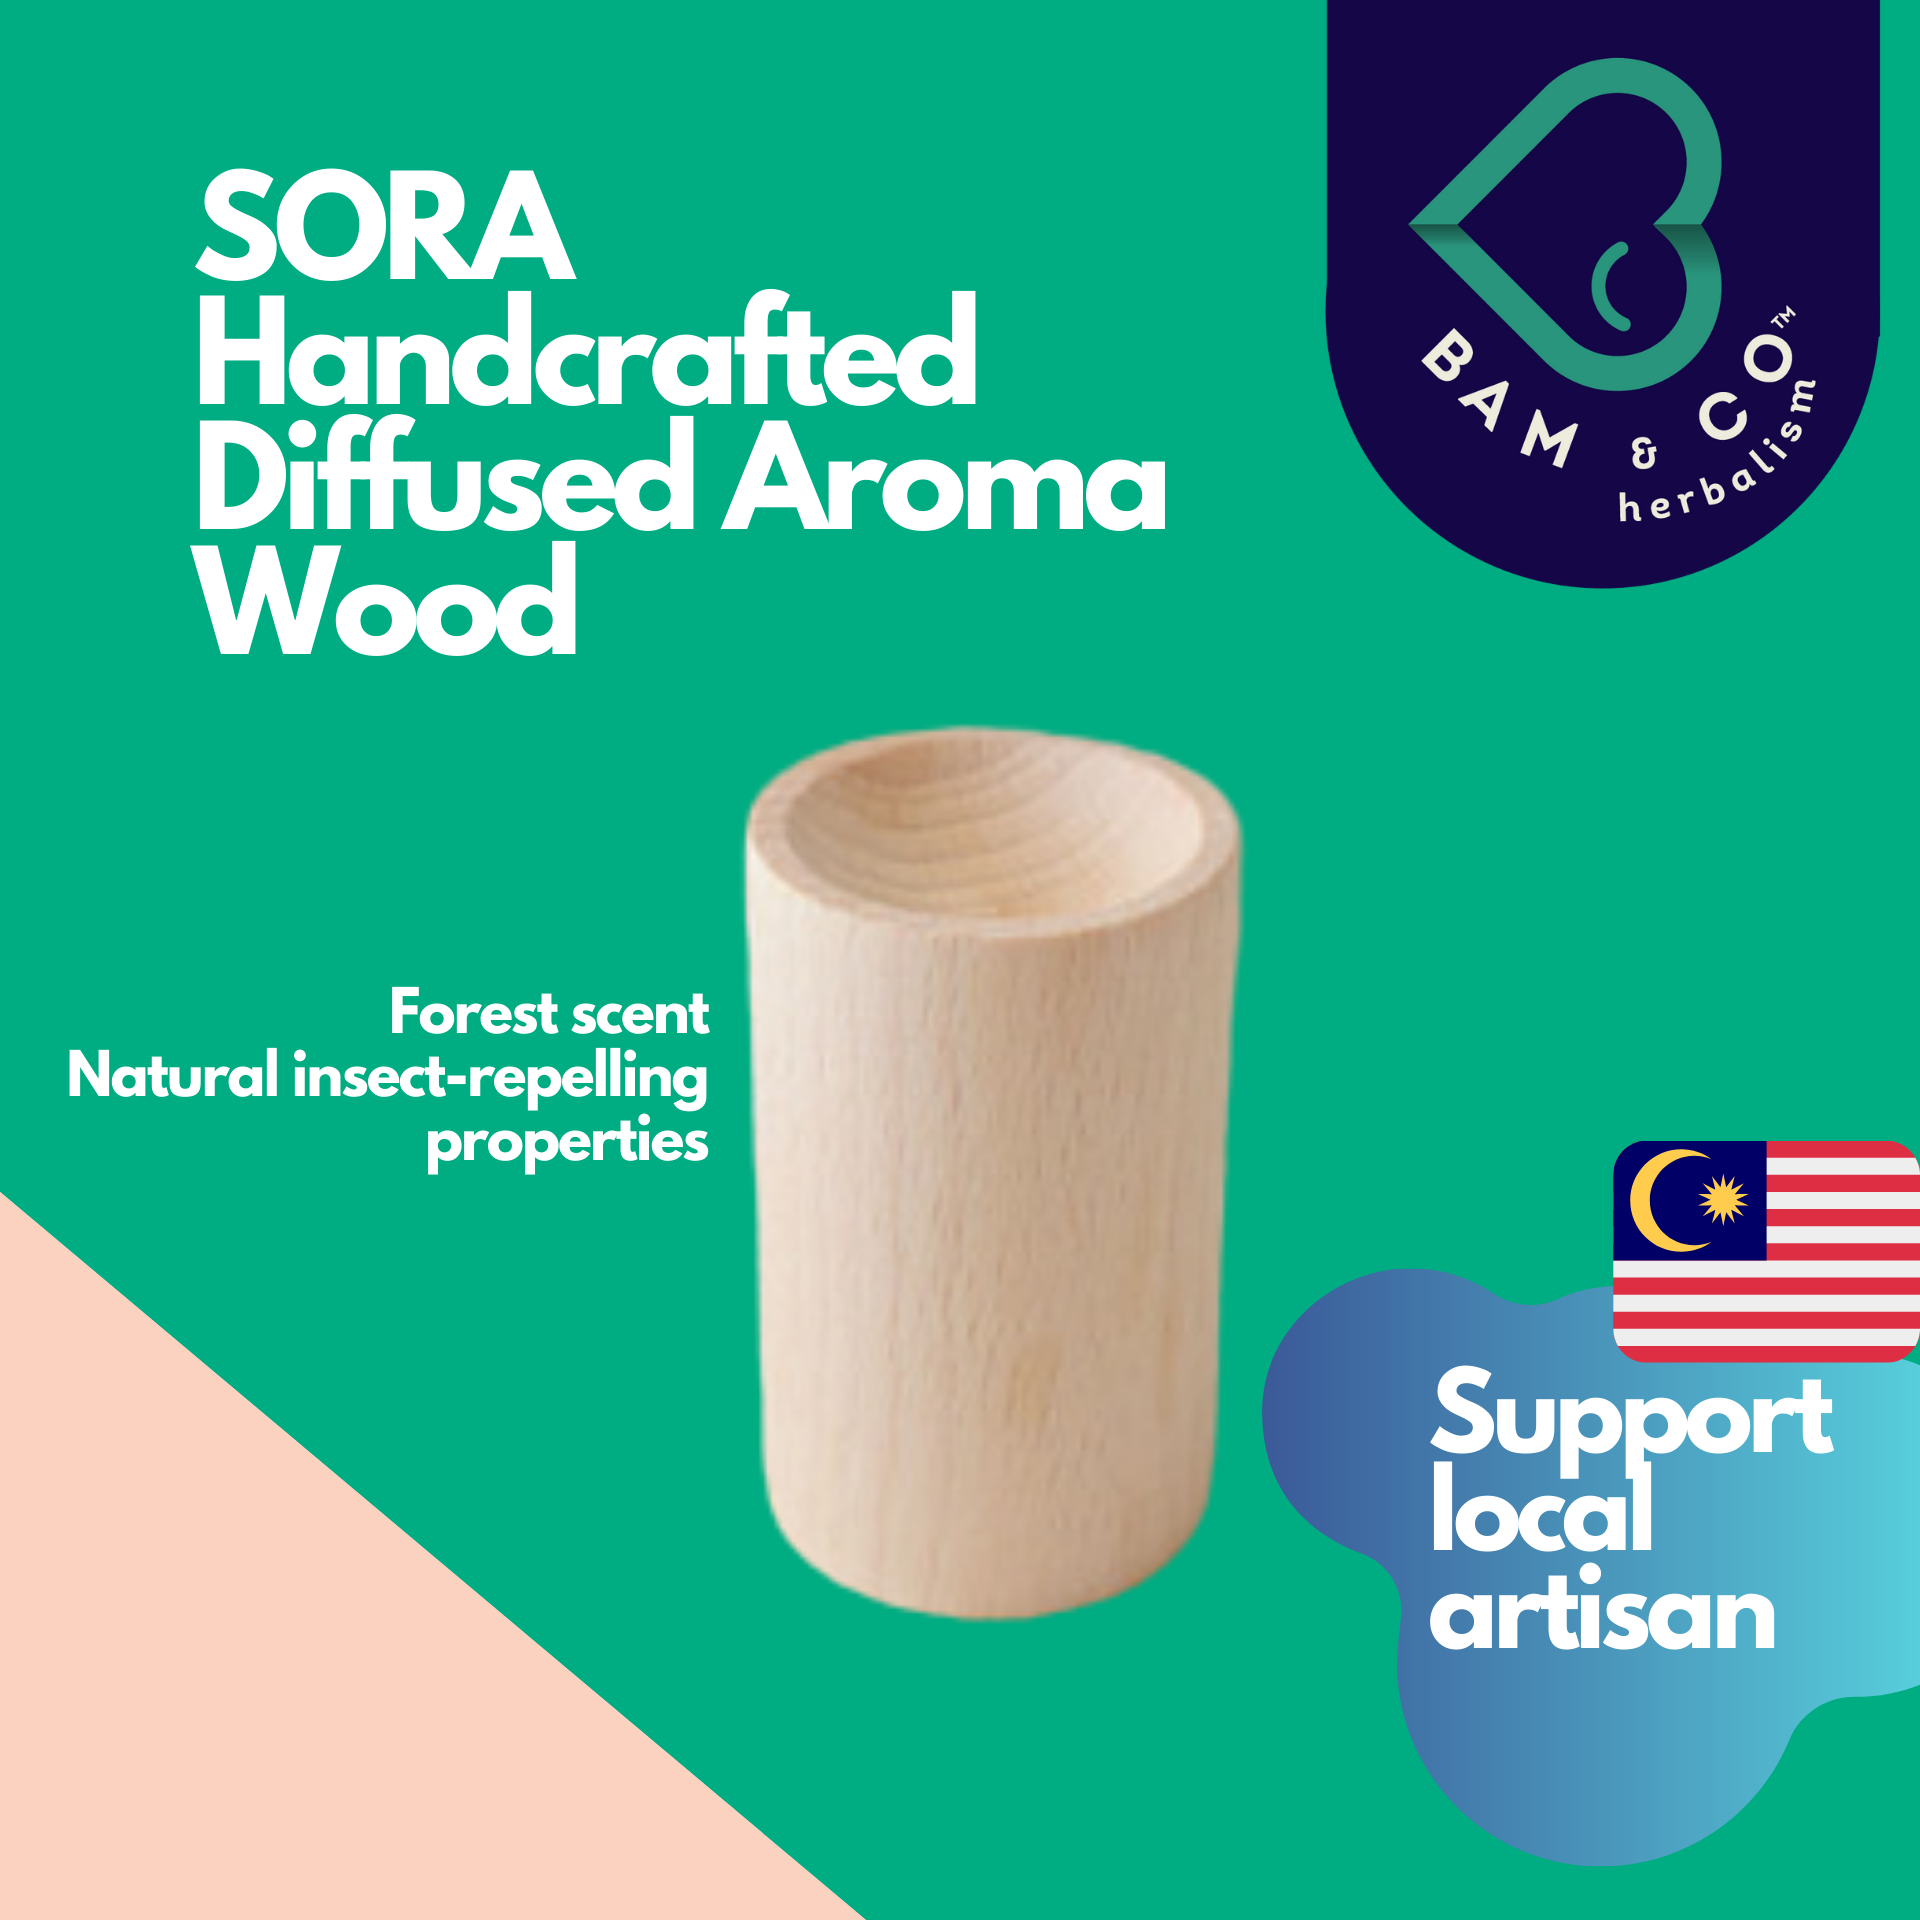 BAM & CO (NEW LAUNCH) SORA Essential Oil Diffuser Aroma Artisan Handcraft Natural Wood - Sleep Aid - Aromatheraphy